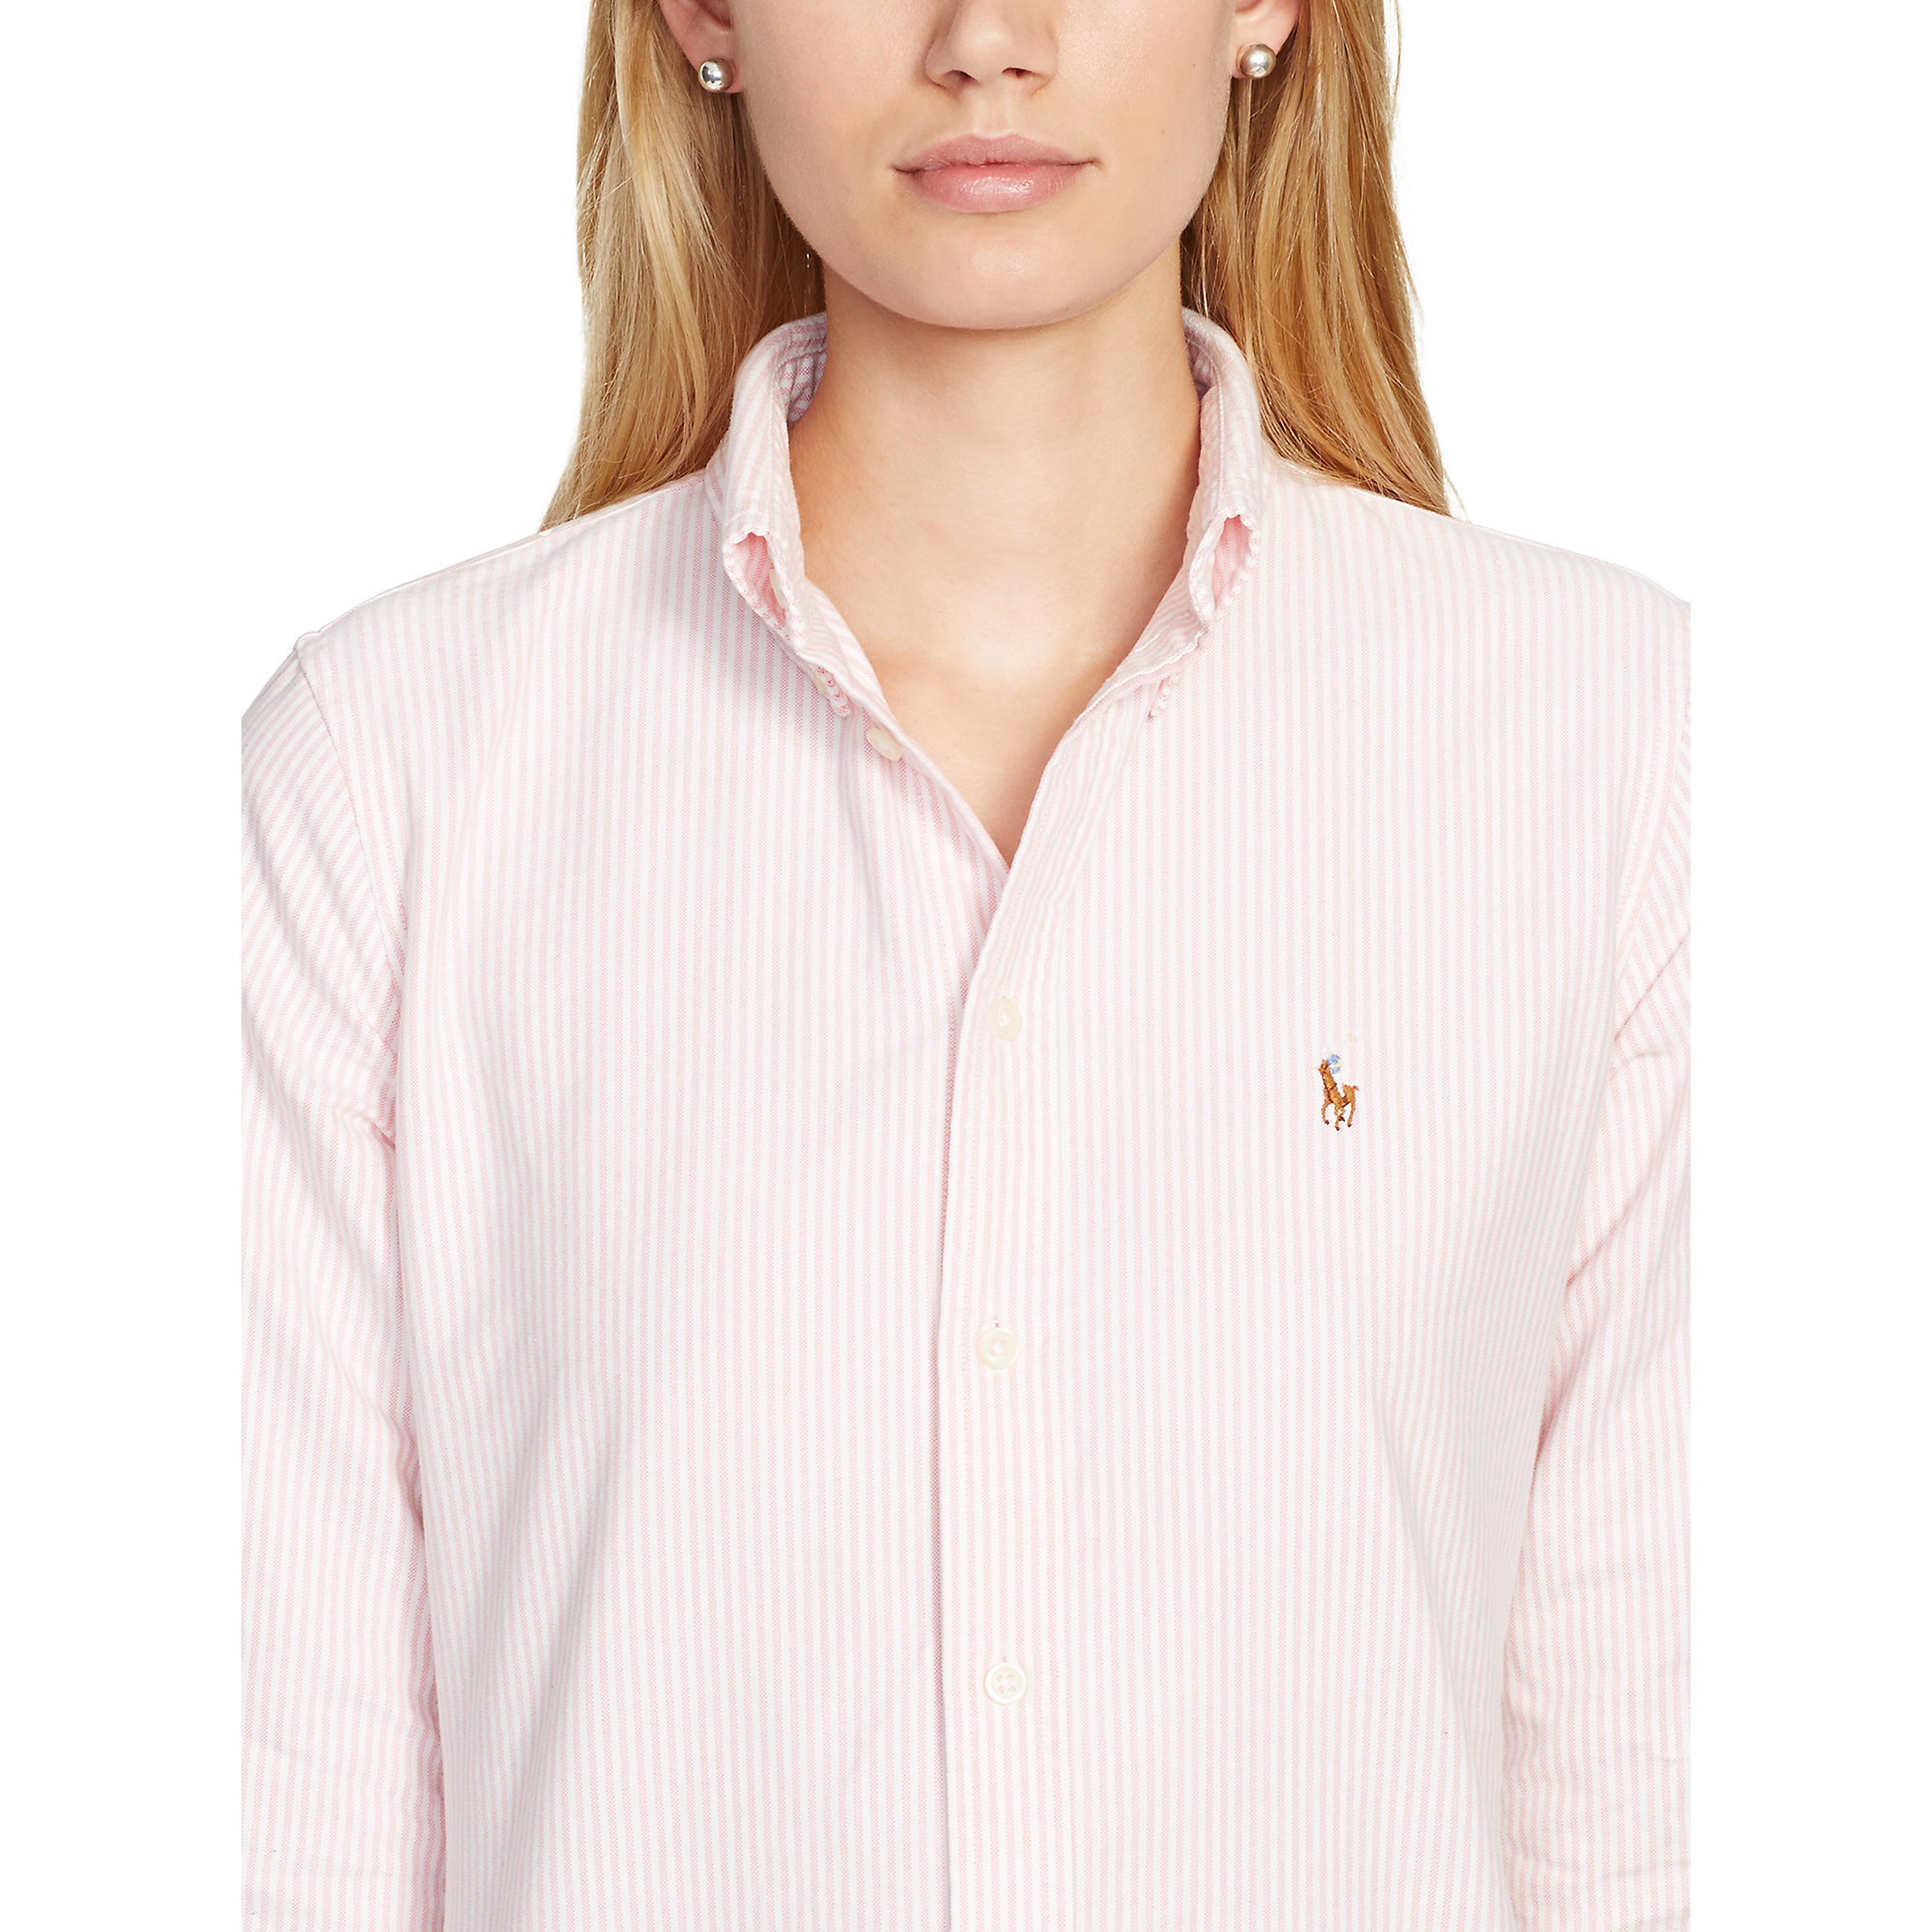 Lyst polo ralph lauren custom fit striped shirt in pink for Pink and white ralph lauren shirt